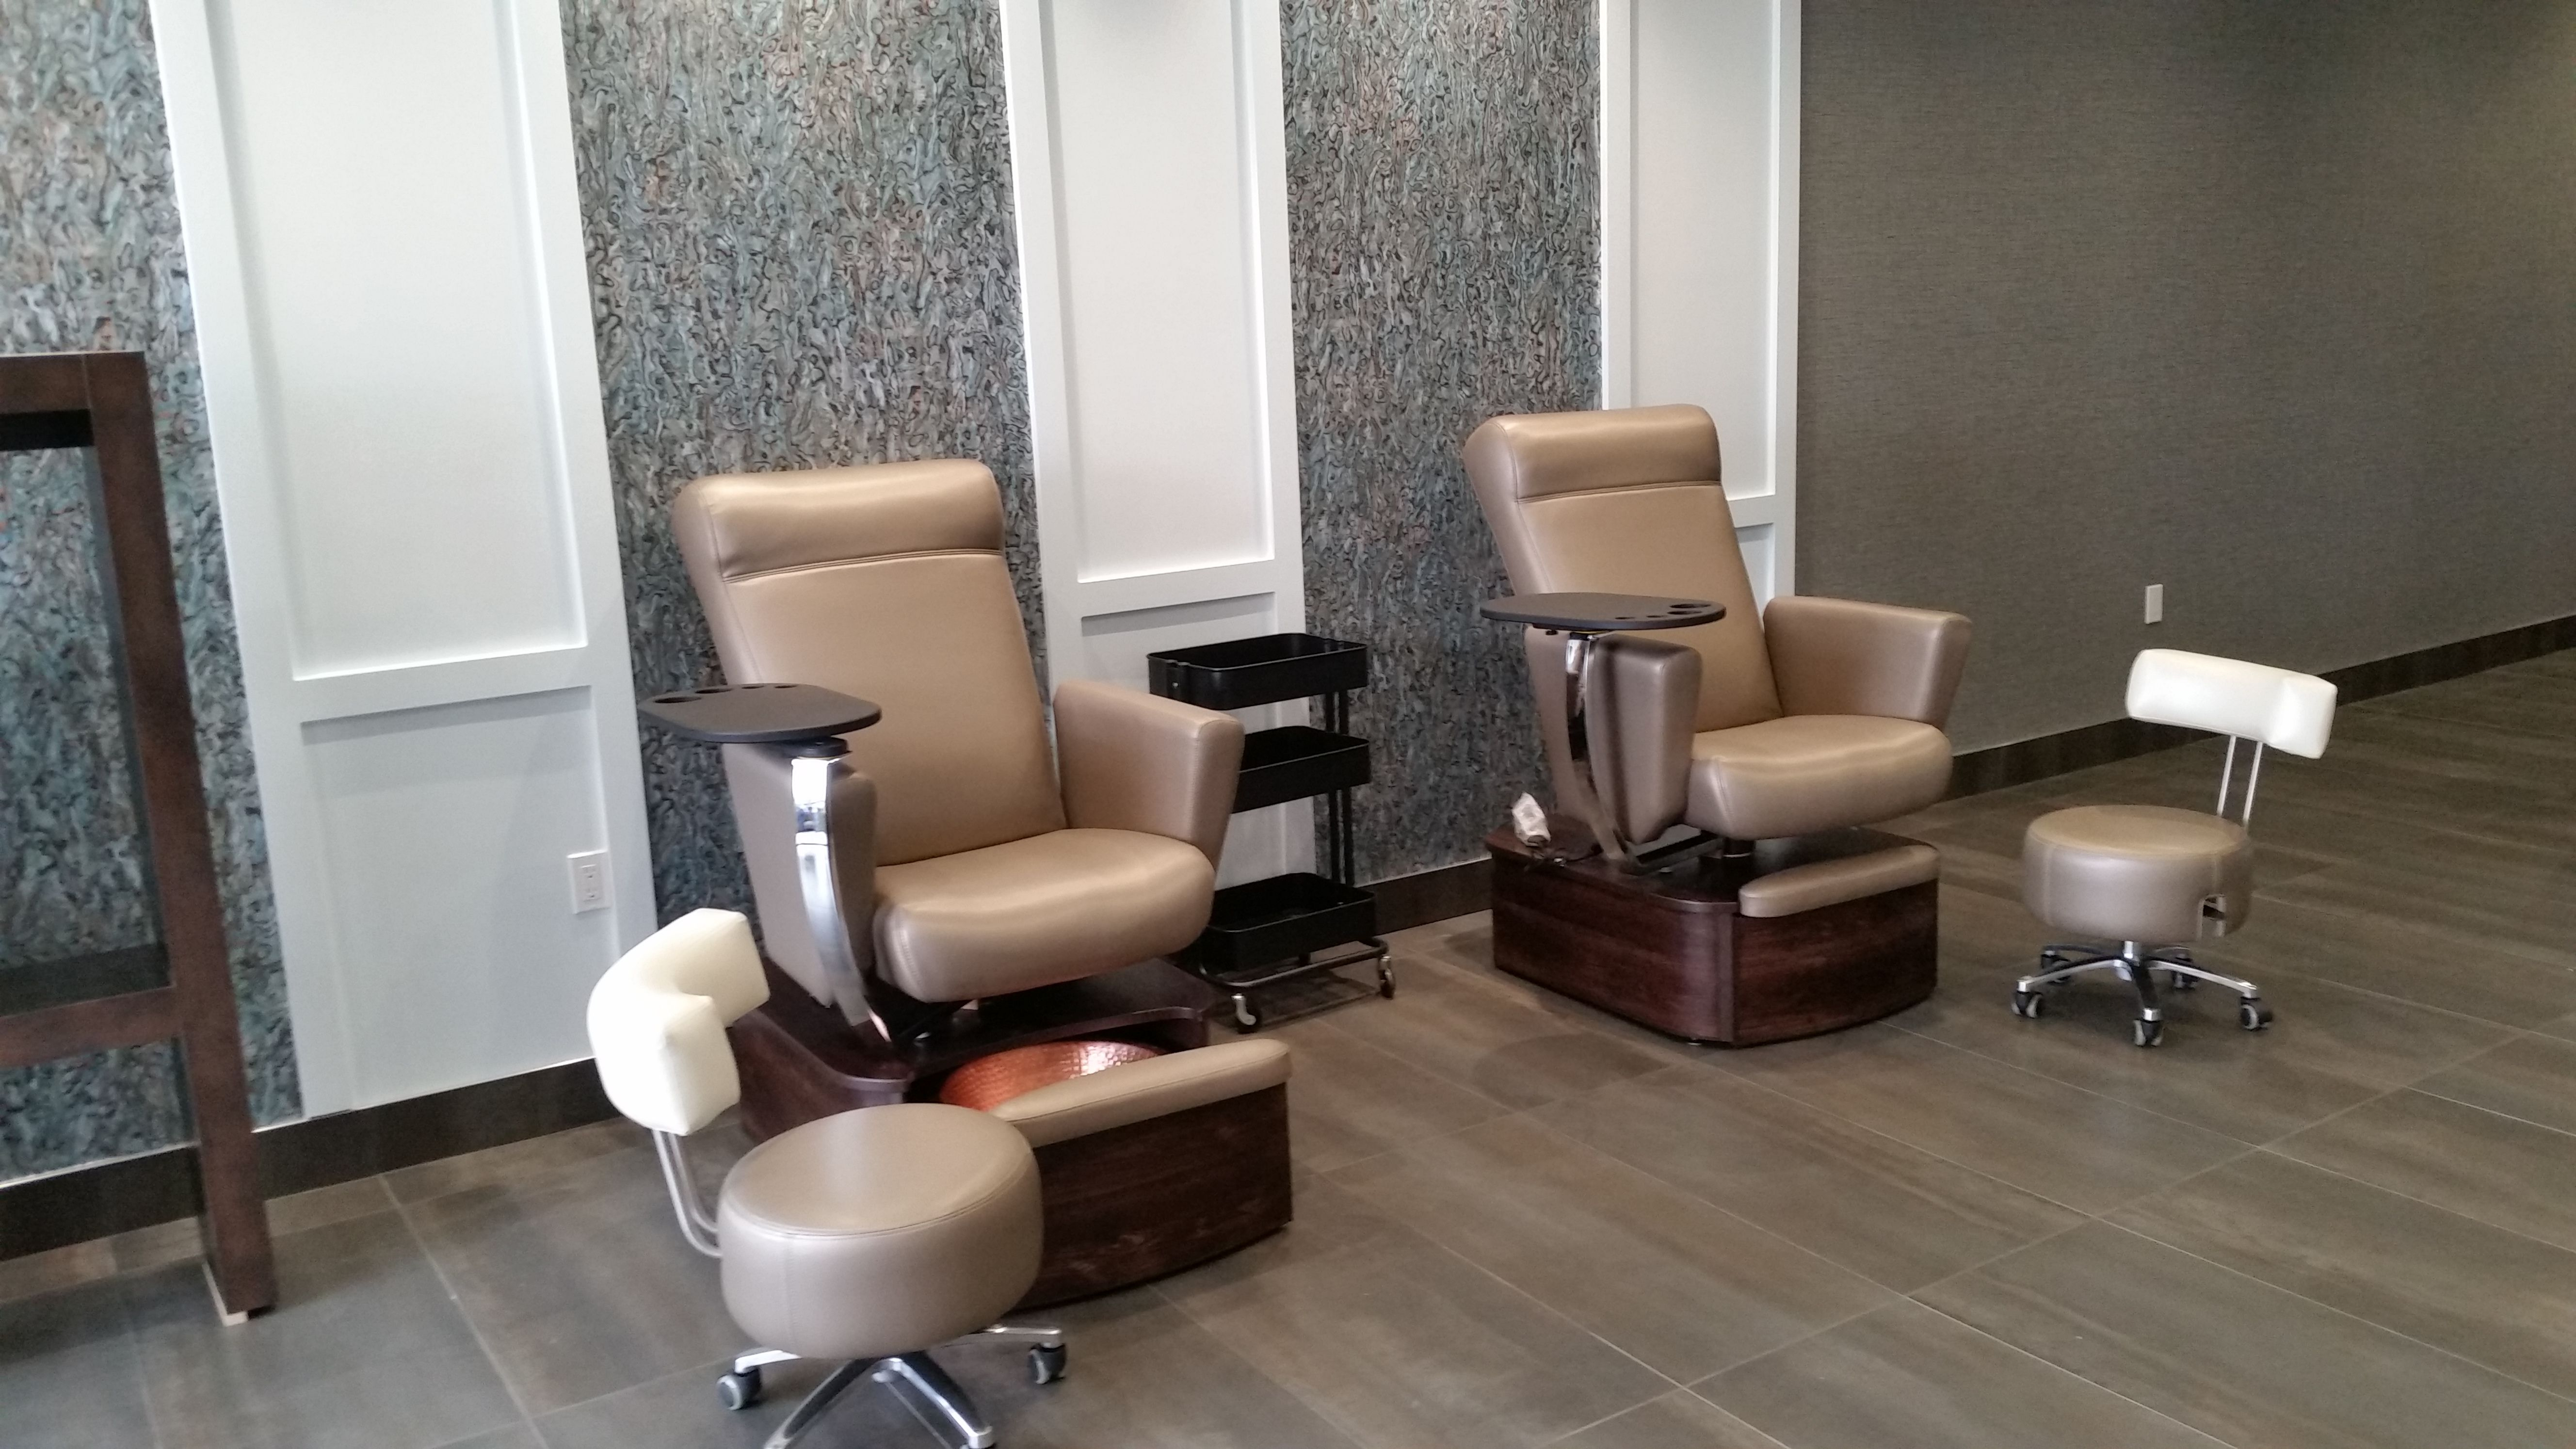 Pedicure Chair Element | No Plumbing | Salon chairs for